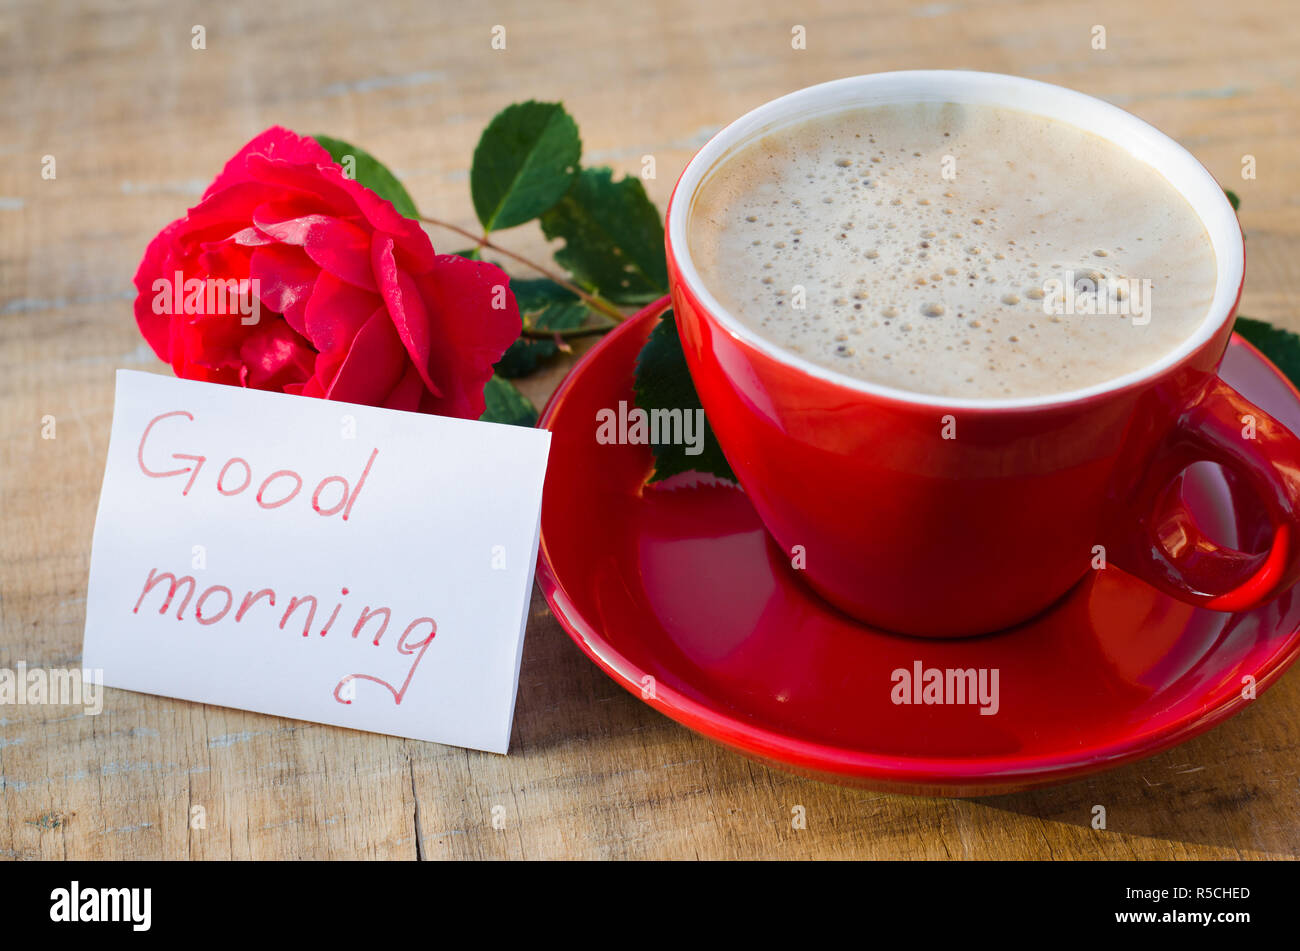 Coffee Flower Good Morning Stock Photos Coffee Flower Good Morning